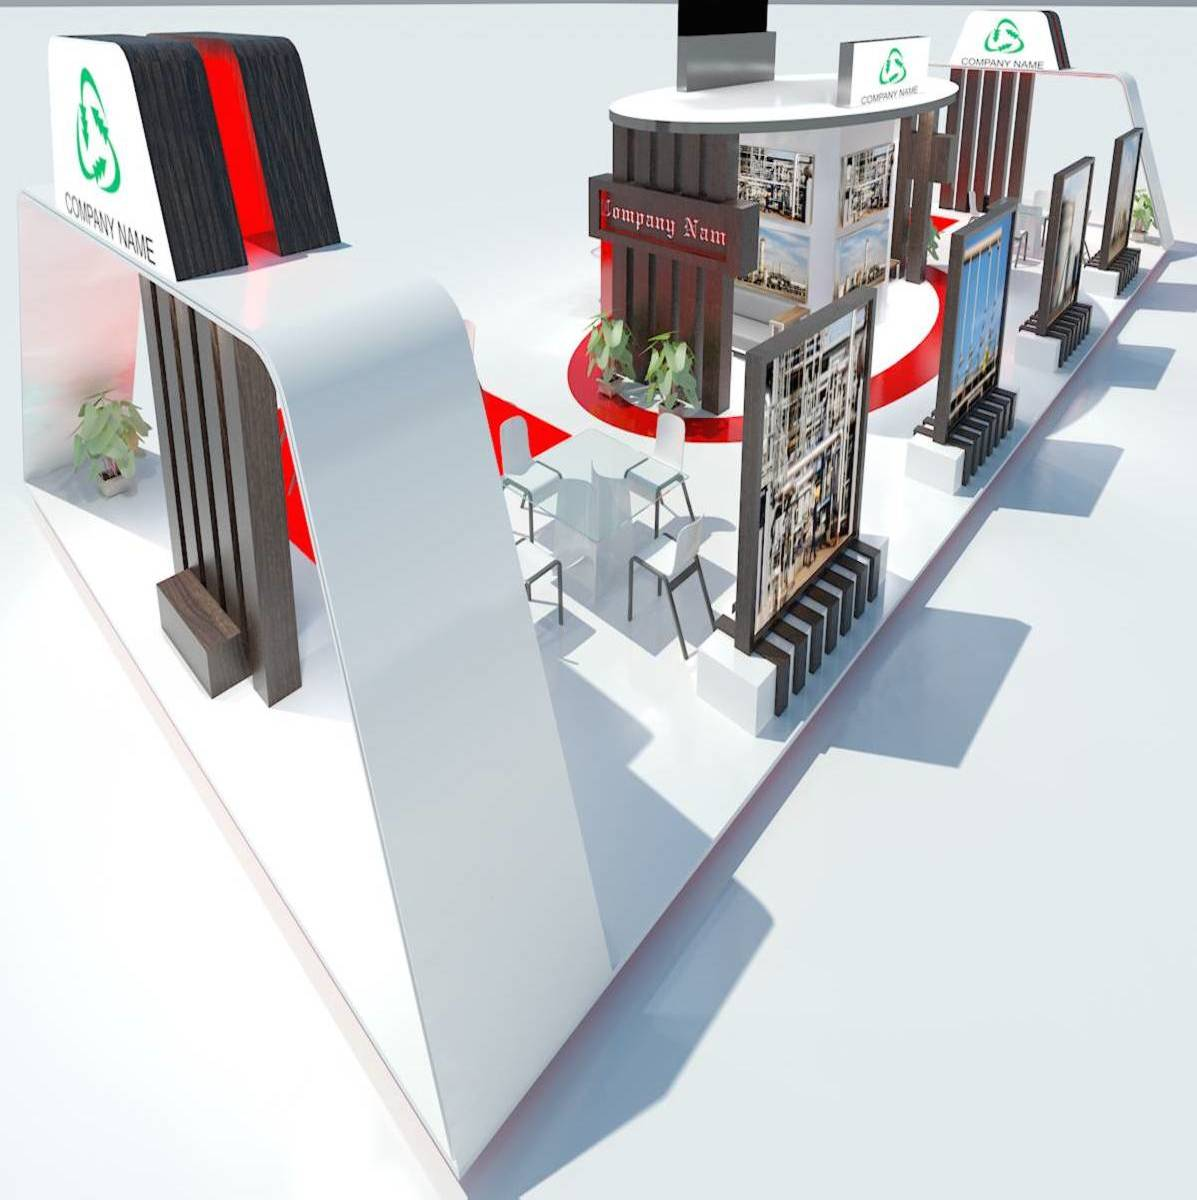 Exhibition Stand 3d Model Sketchup : Exhibition stand d model